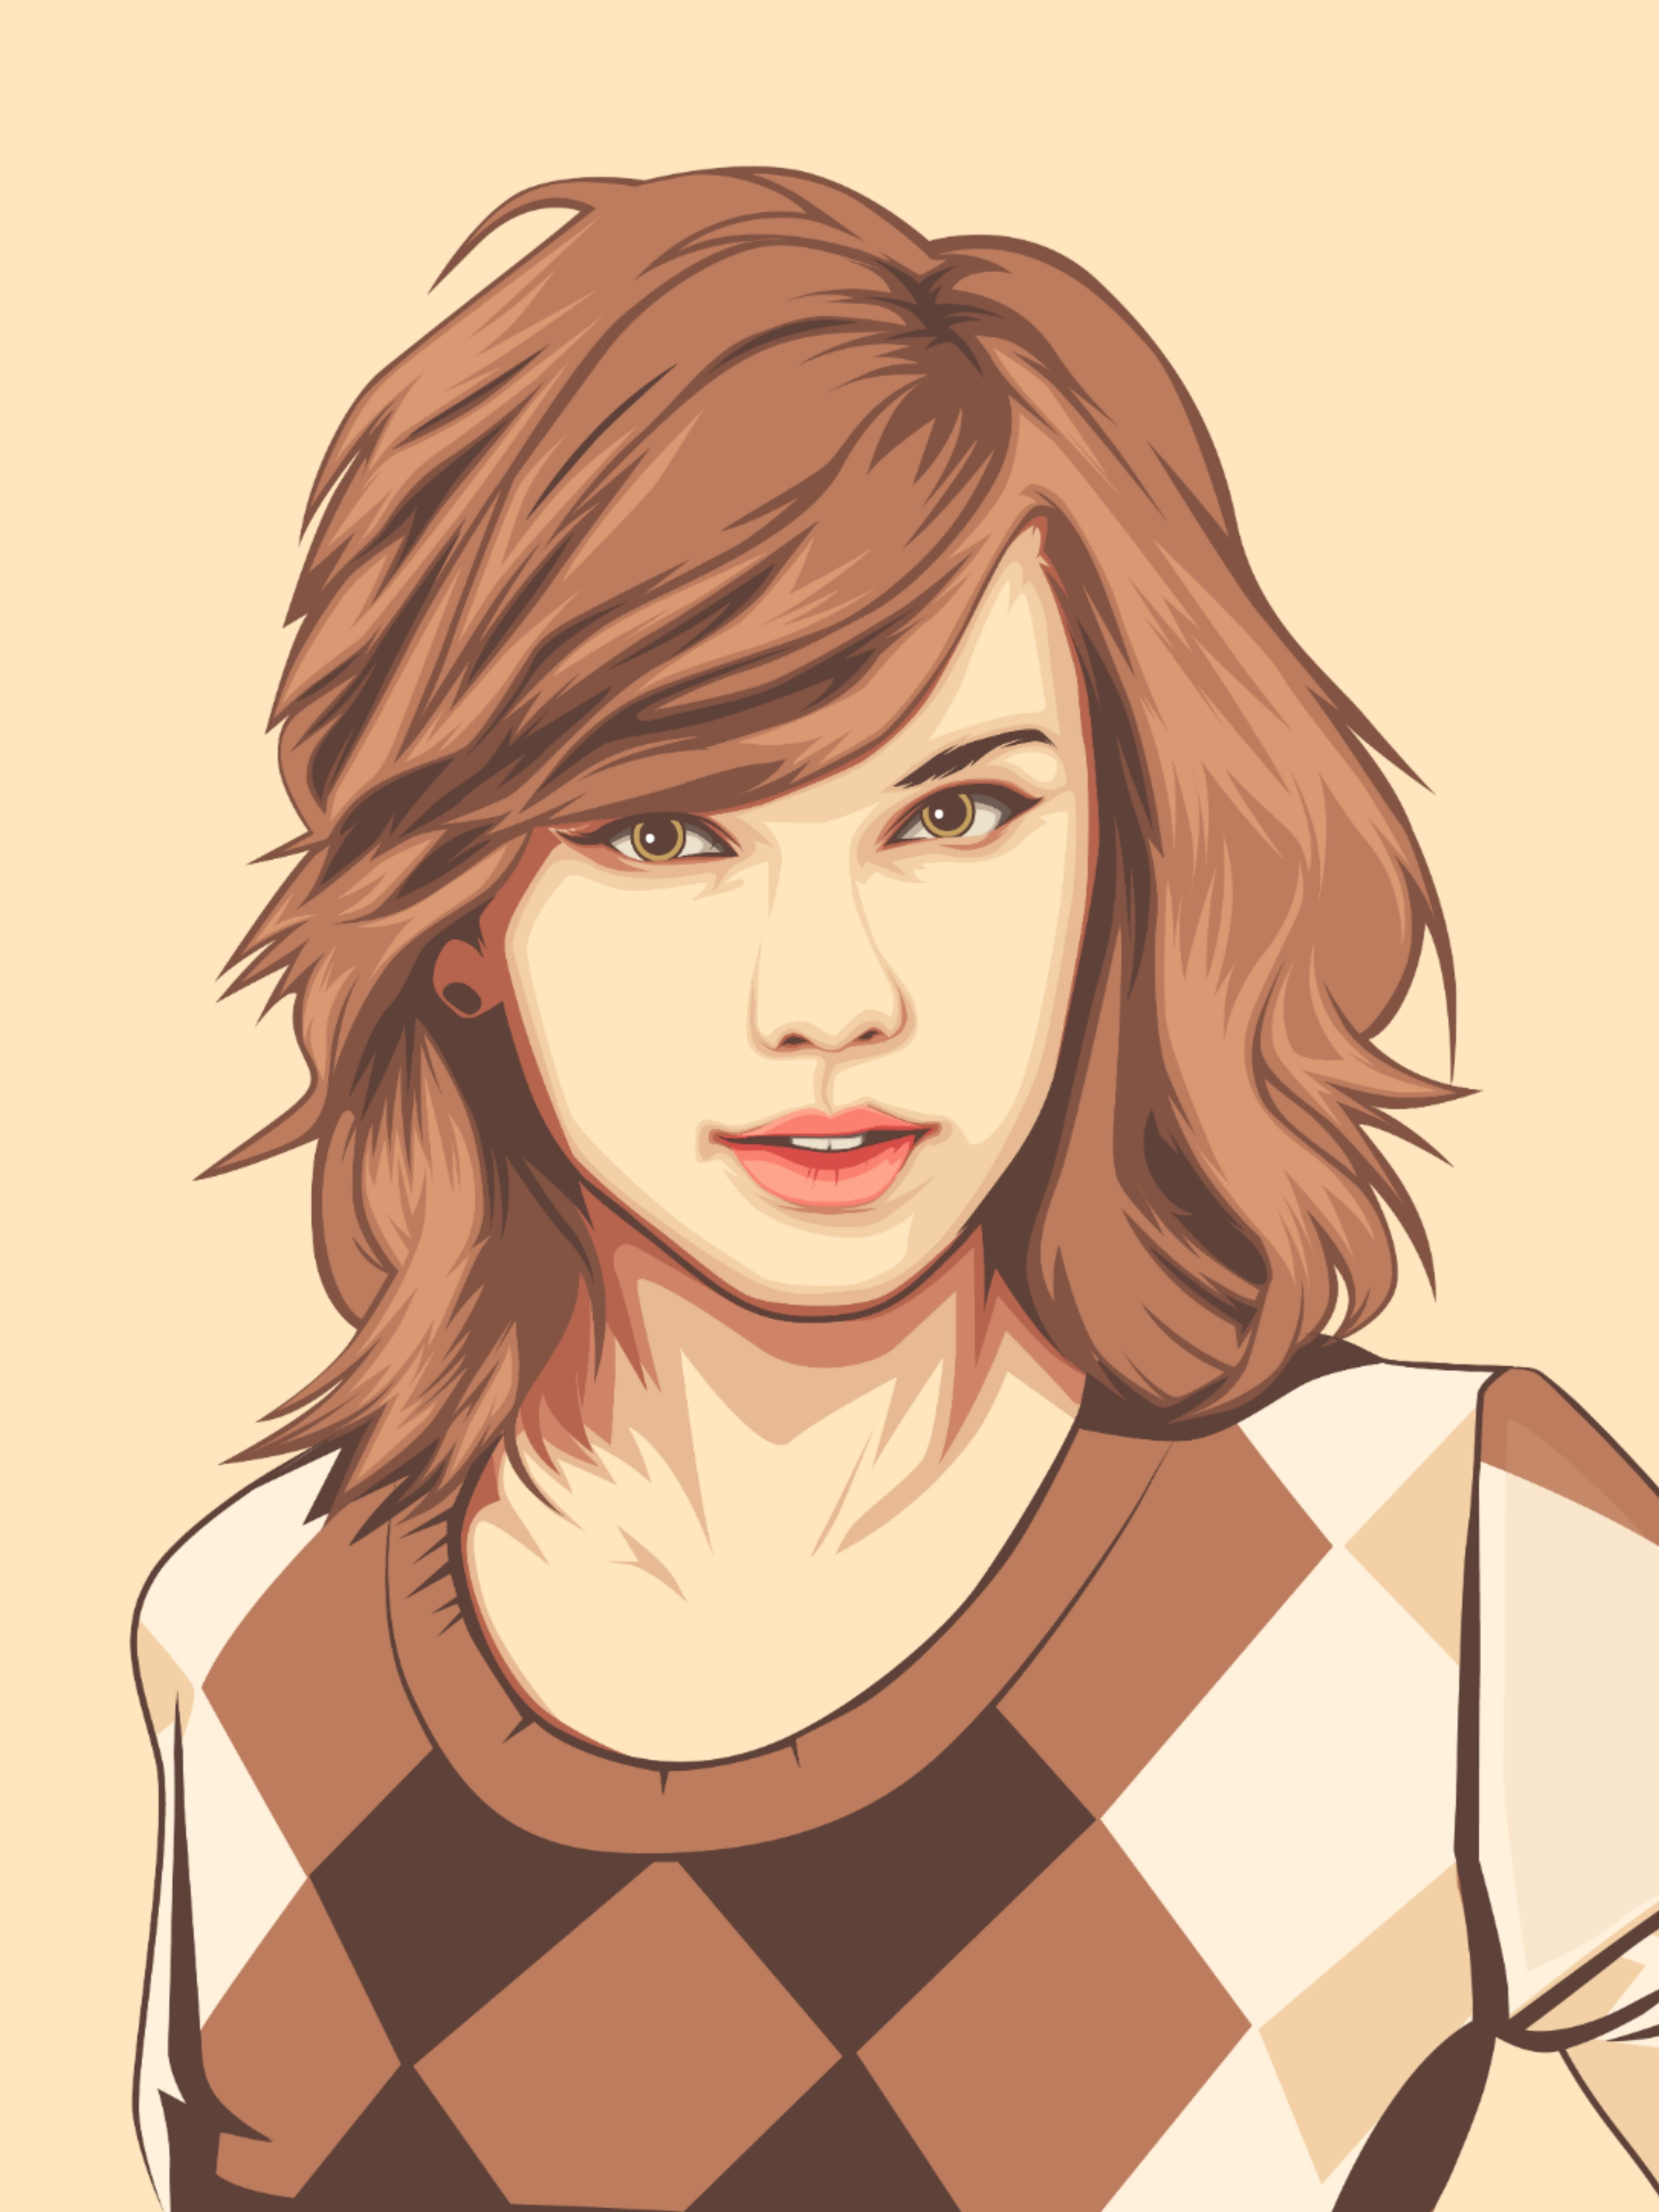 I love creating vector portrait art from portrait photo with my unique style   Make yours now !!!!   I am available on fiverr.com  here are my social media account  instagram @andi_wandirana @aj.vexelart  #drawings #drawing #illustration #illustrations #illustratoroninstagram #illustragram #drawingoftheday #artdiscover #illustrationartists #illustrationartist #illustrated #illustrate #illustracion #moreillustrations #illustrationnow #theillustrationroom #illustrationhowl #illustrator